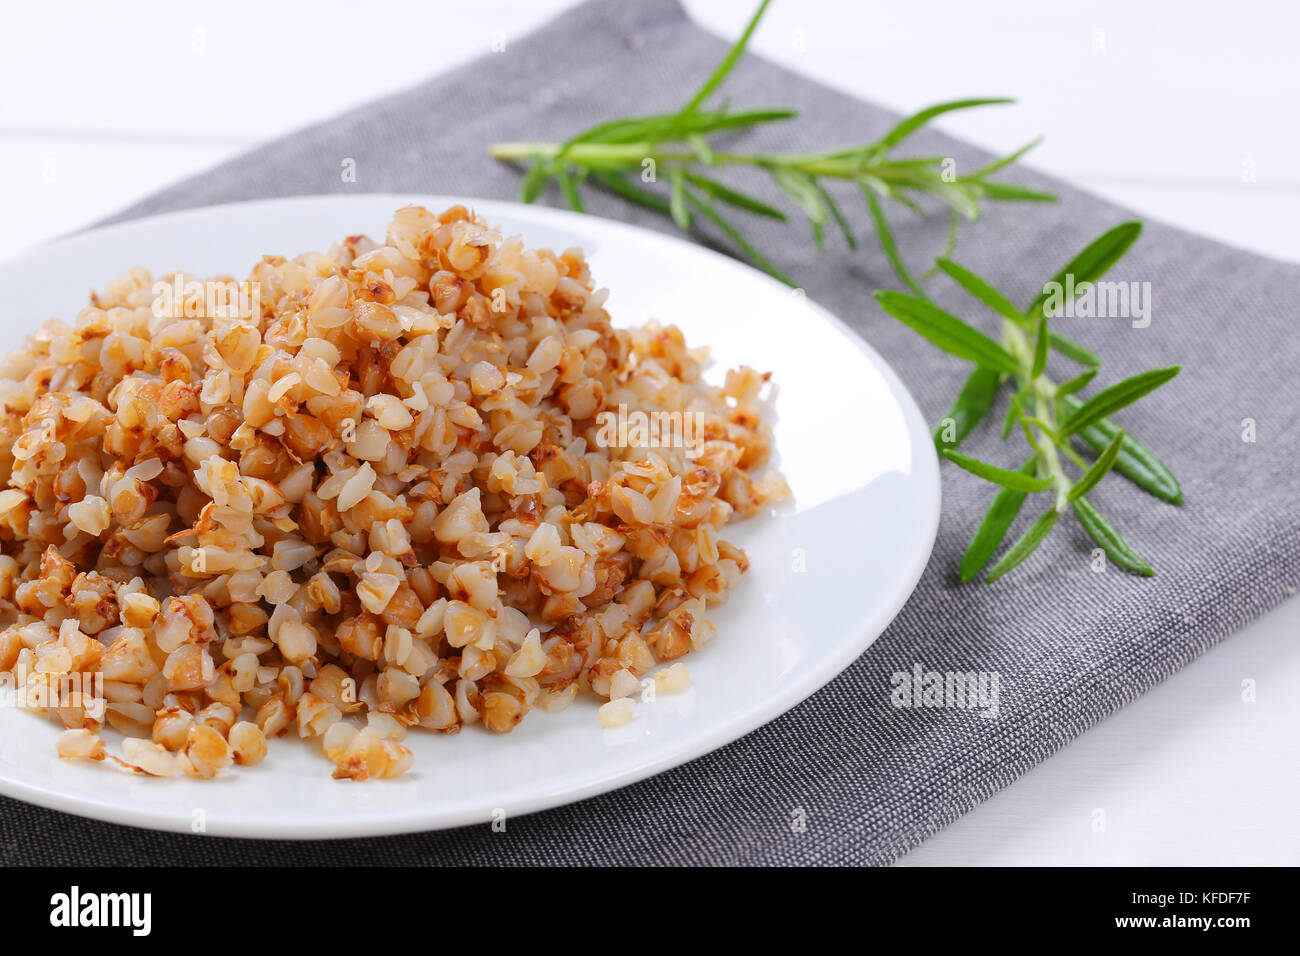 plate of cooked buckwheat on grey place mat - close up - Stock Image